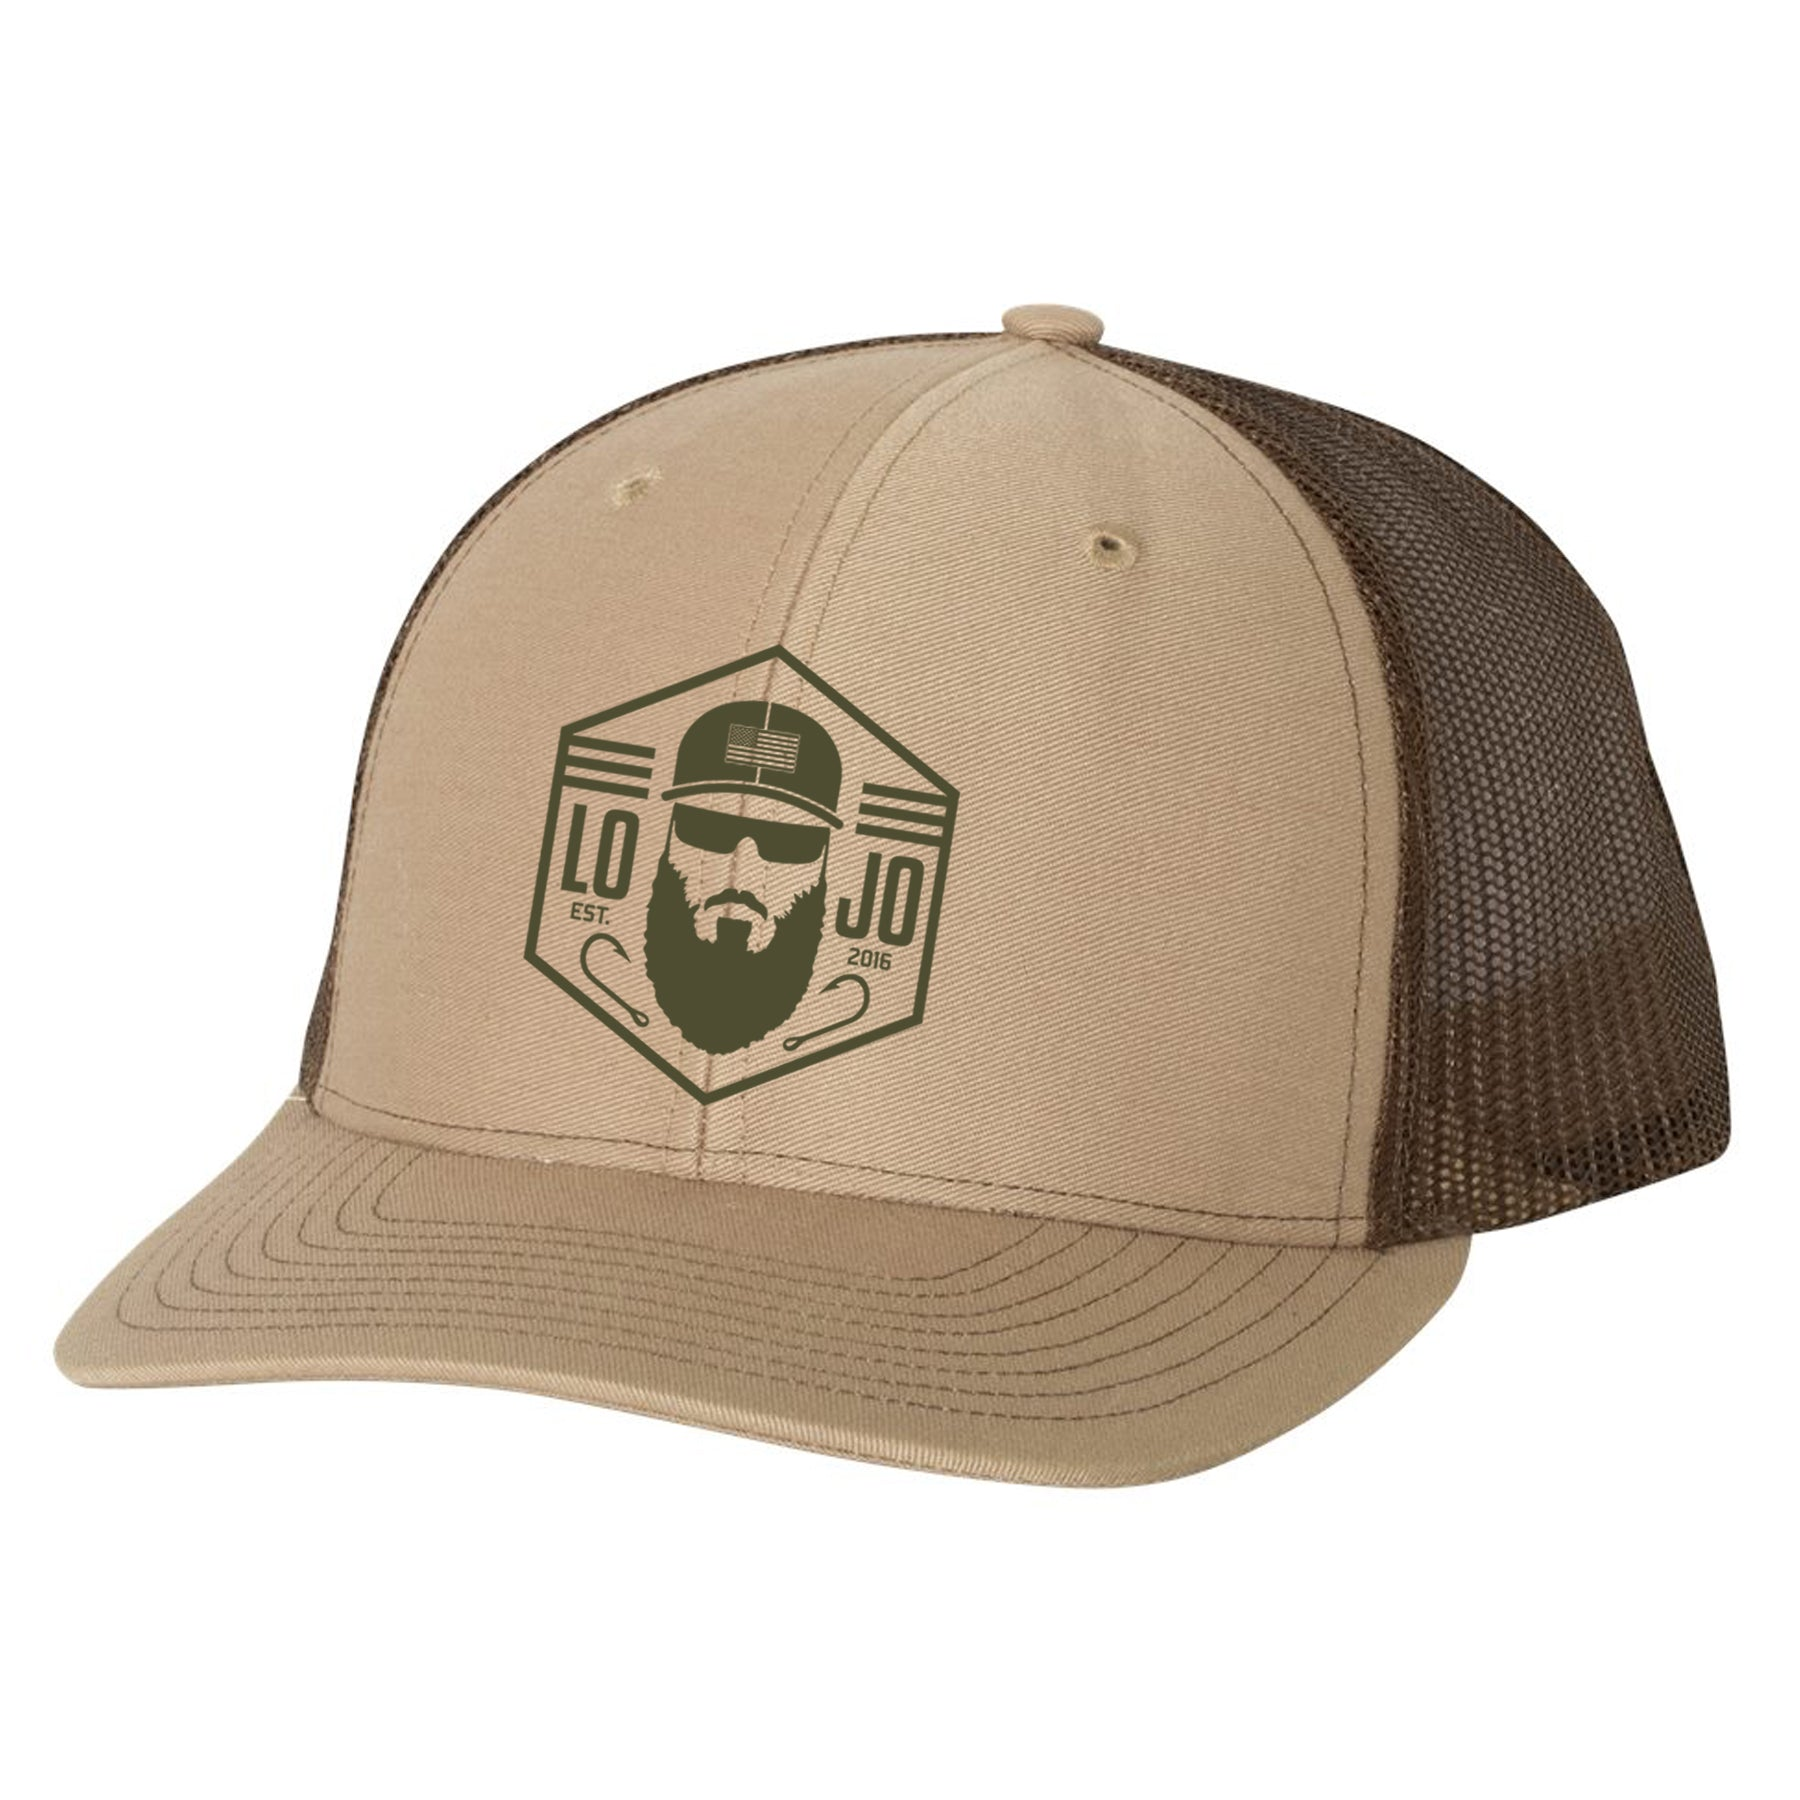 LOJO Fishing Khaki Trucker Hat